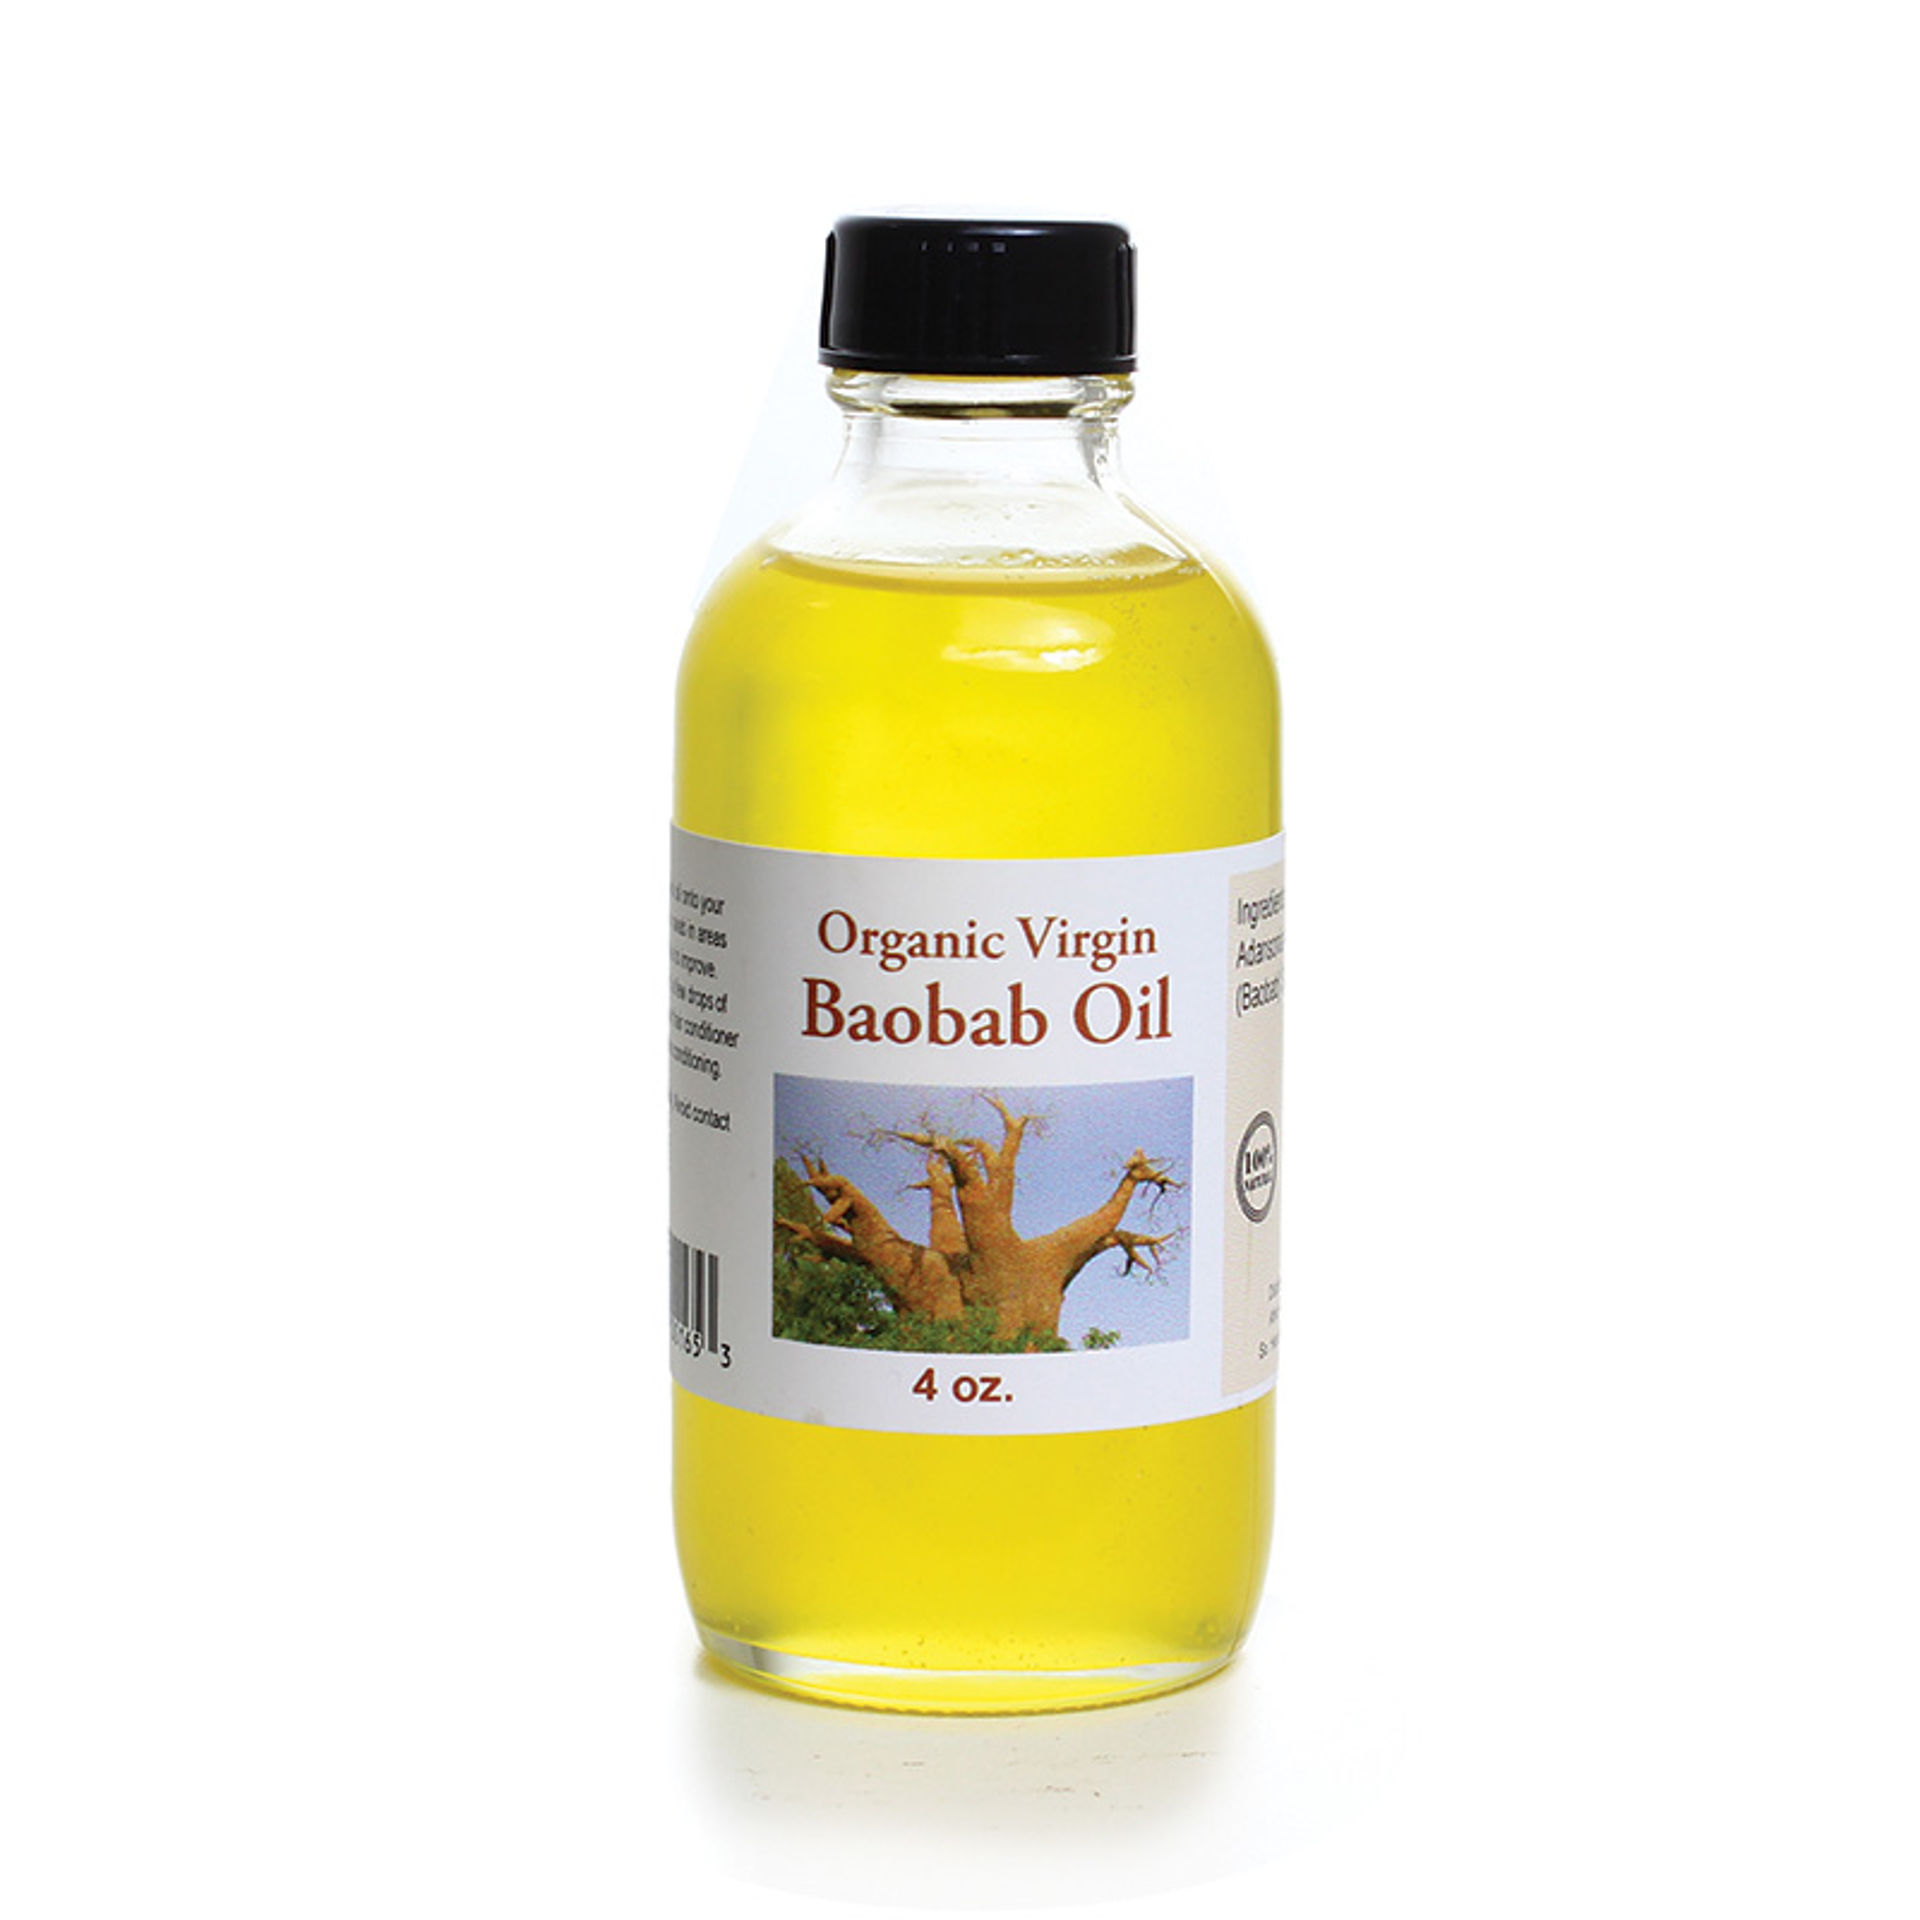 Picture of Organic Virgin Baobab Oil - 4 oz.